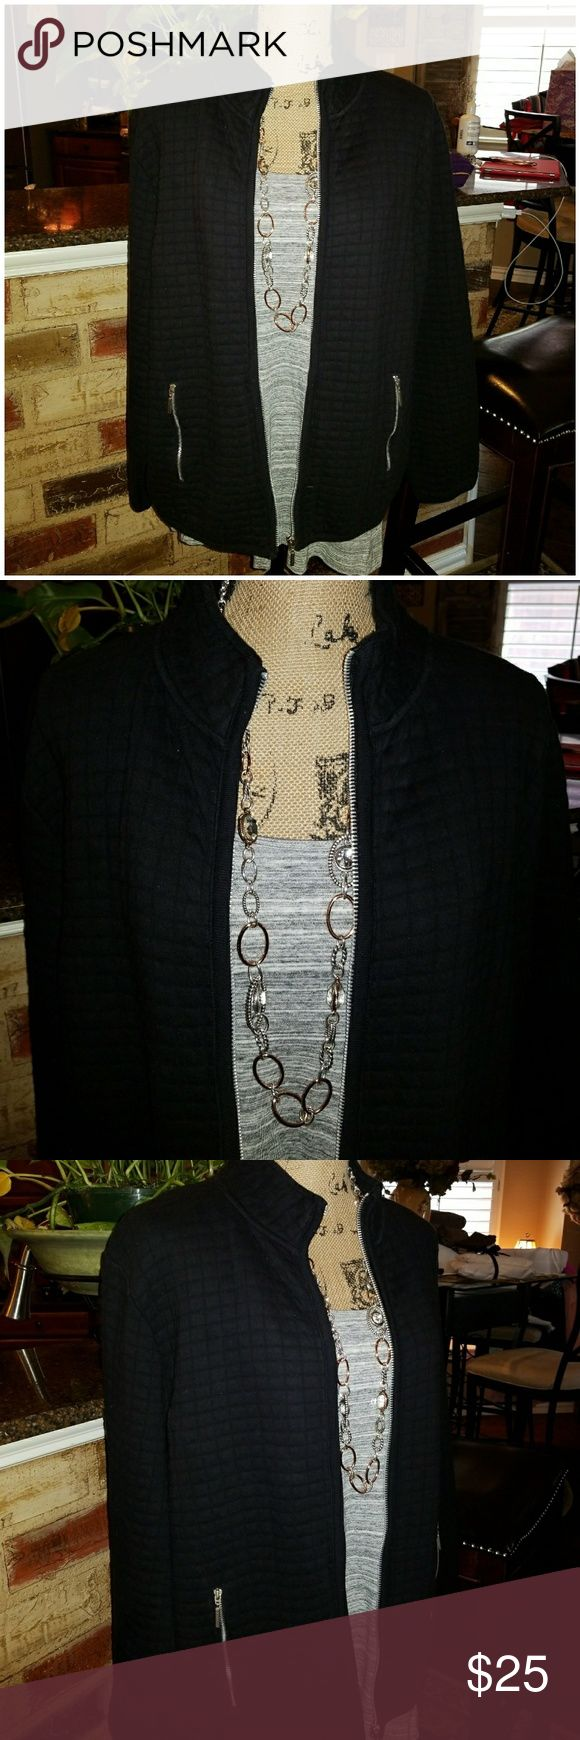 ♦️Karen Scott Cotton Blend Jacket Awesome Black Jacket That has a waffle print quilt design . Has Silver  zipper In front and front pockets. In excellent excellent condition as only worn once or twice. Material is 85% cotton with 15% polyester. Wonderful for Fall and in to Spring. Karen Scott Jackets & Coats